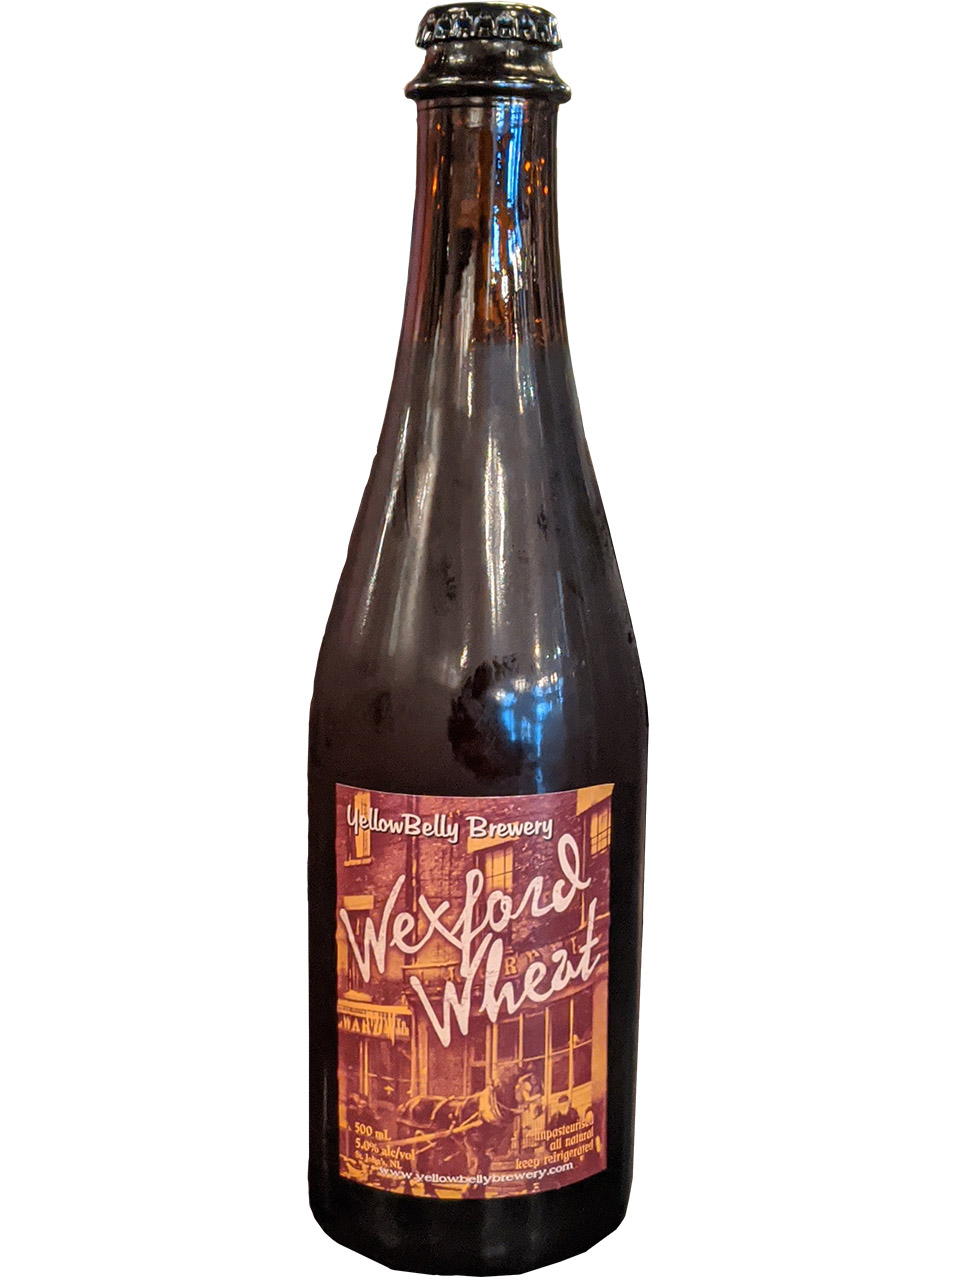 YellowBelly Wexford Wheat Ale 500ml Bottle